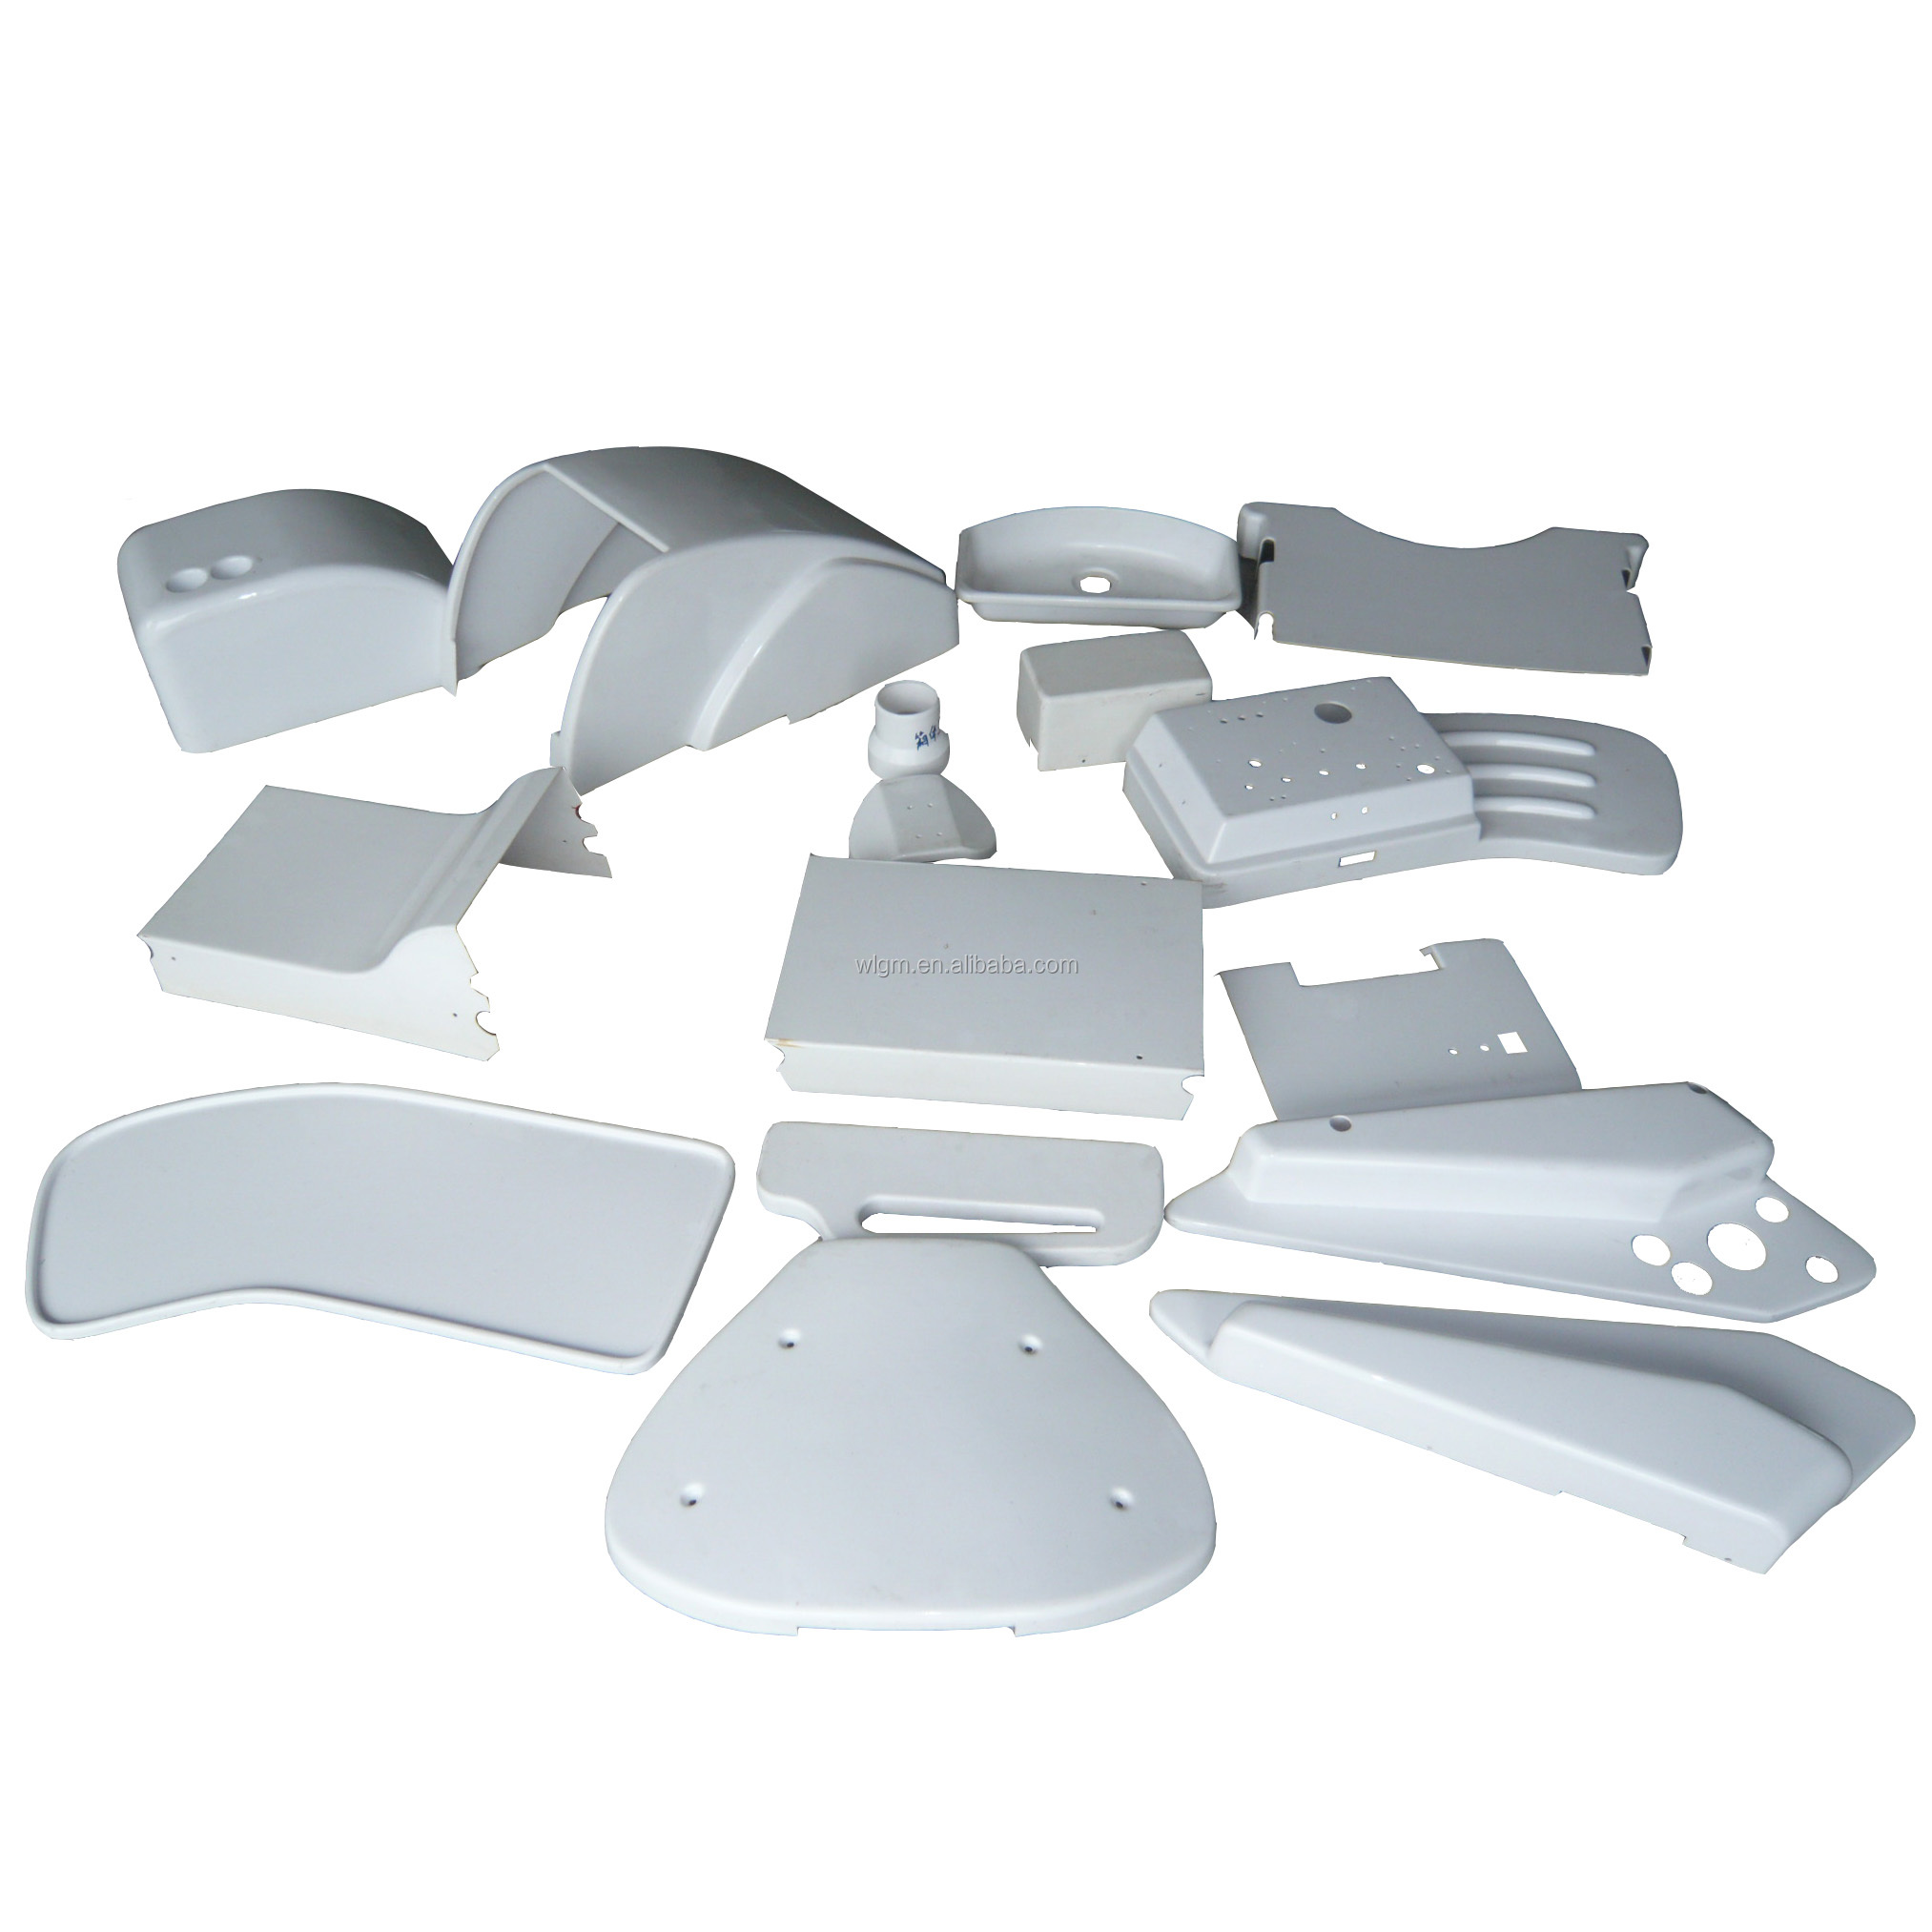 vacuum forming process custom medical equipment thermoforming plastic products medical beds parts ningbo yuyao manufacturer